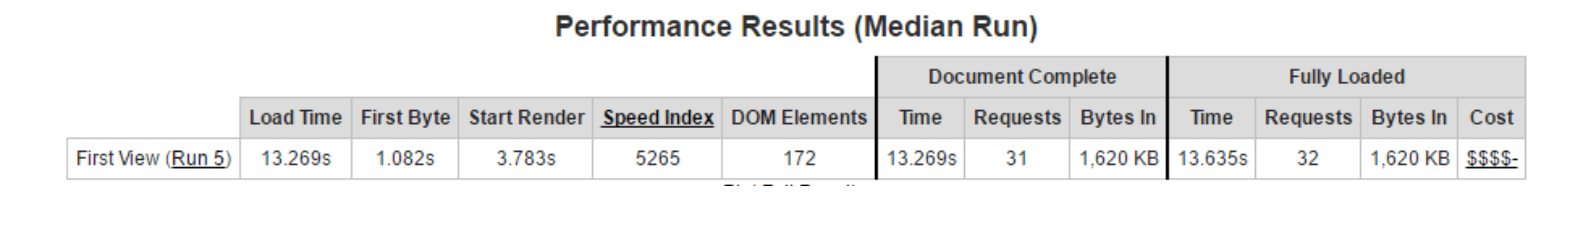 Performance Results 2